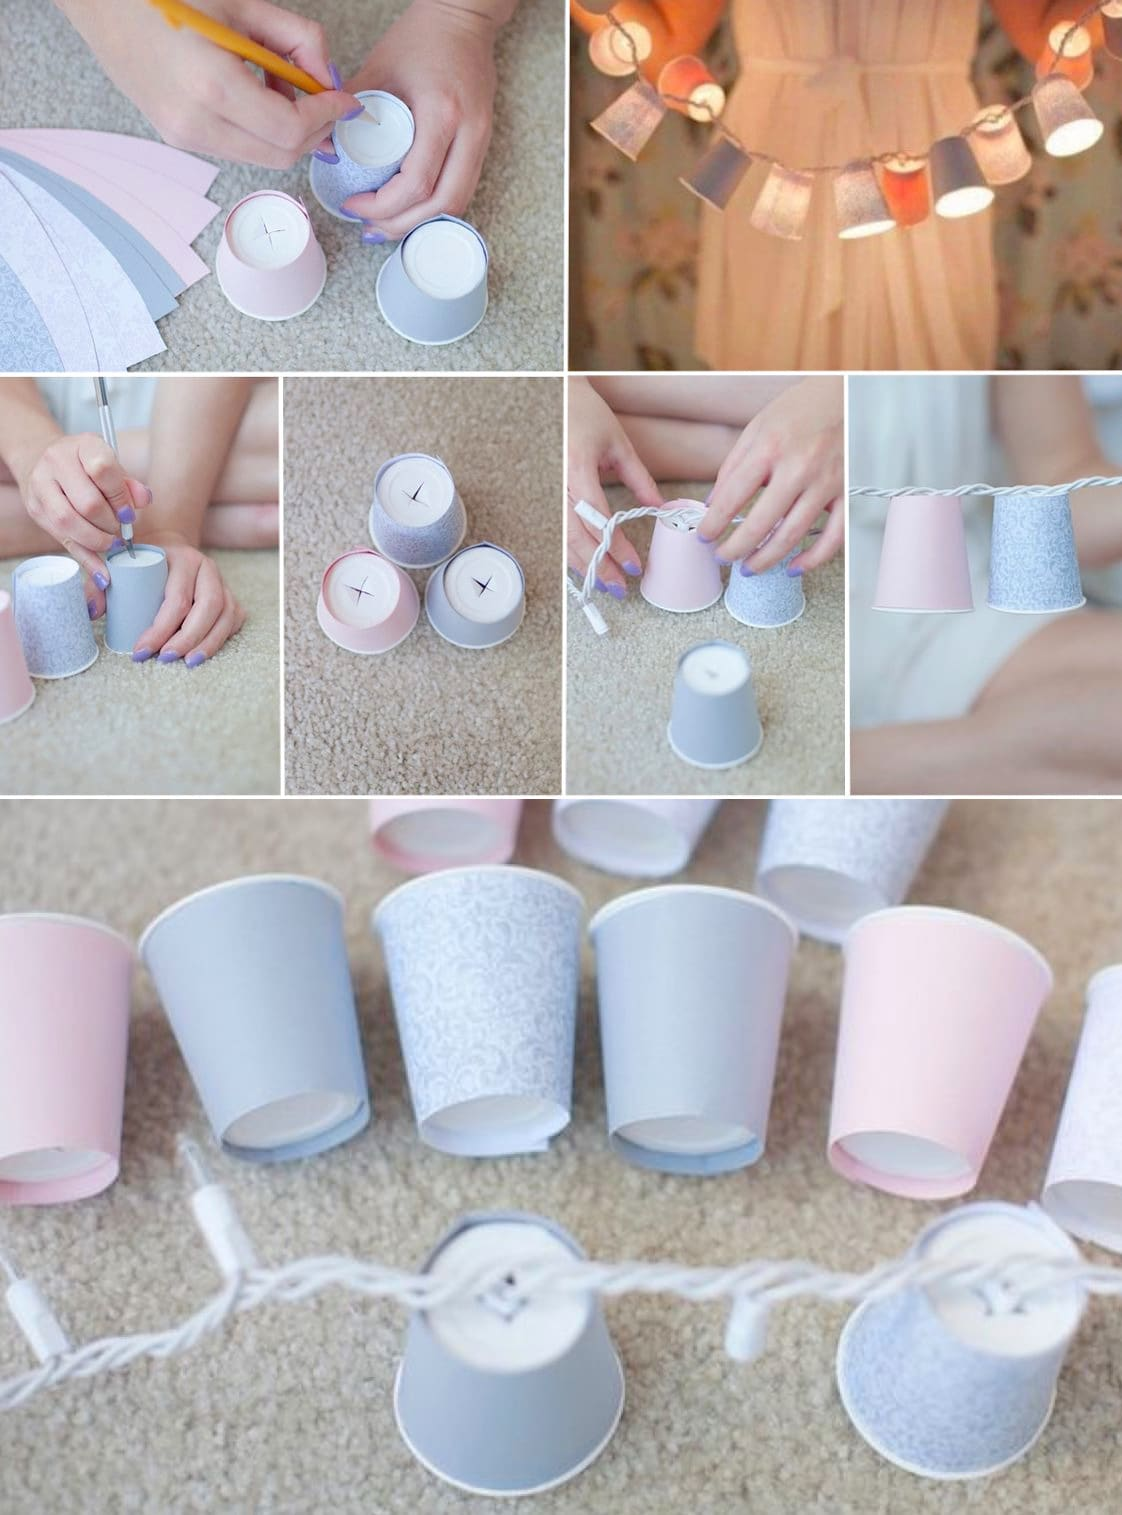 Workshop on making a garland from paper cups